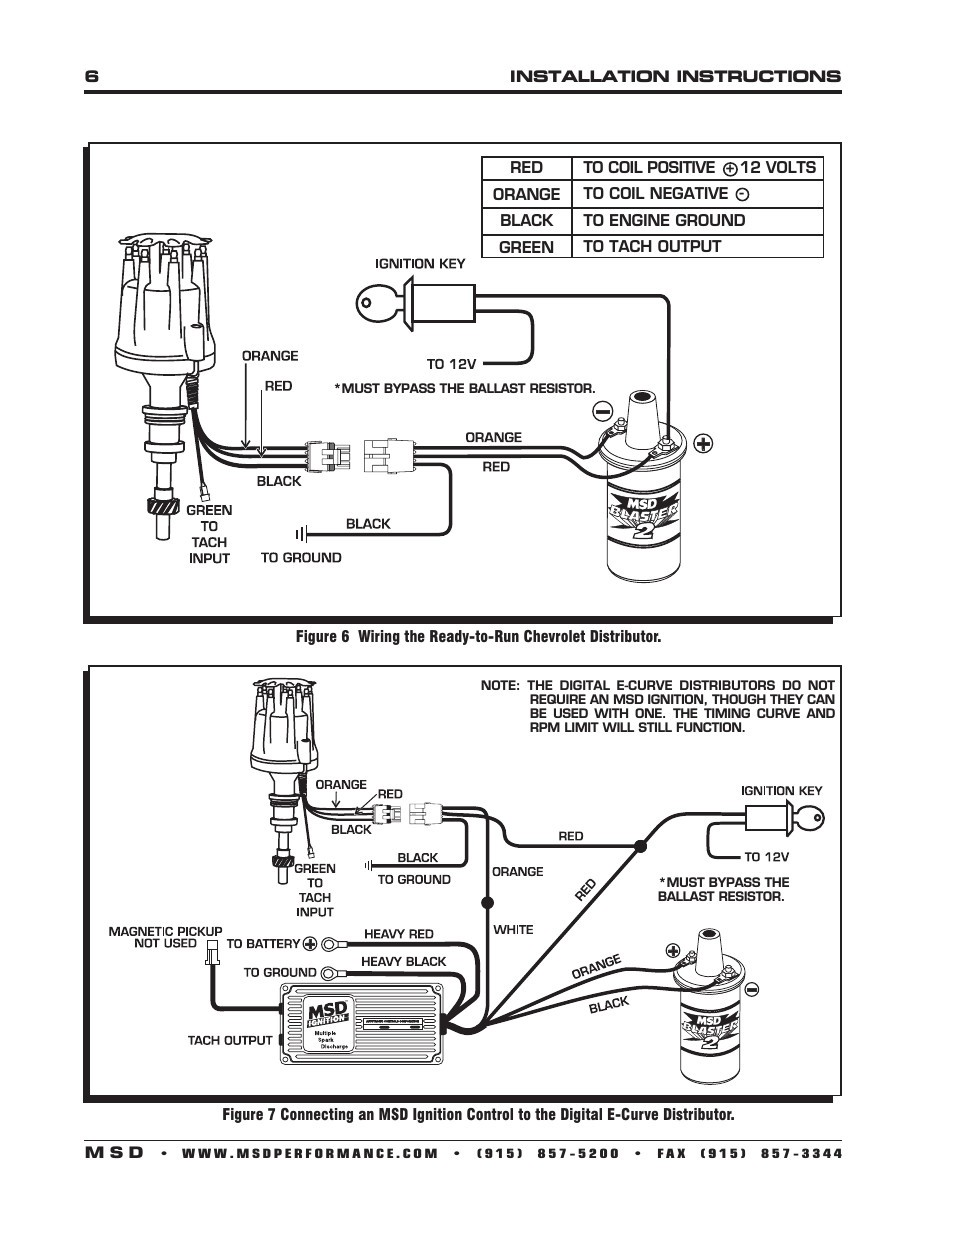 msd 6a 6200 wiring diagram whirlpool washer motor rx7 distributor 85561 schematics diagrams u2022 jeep